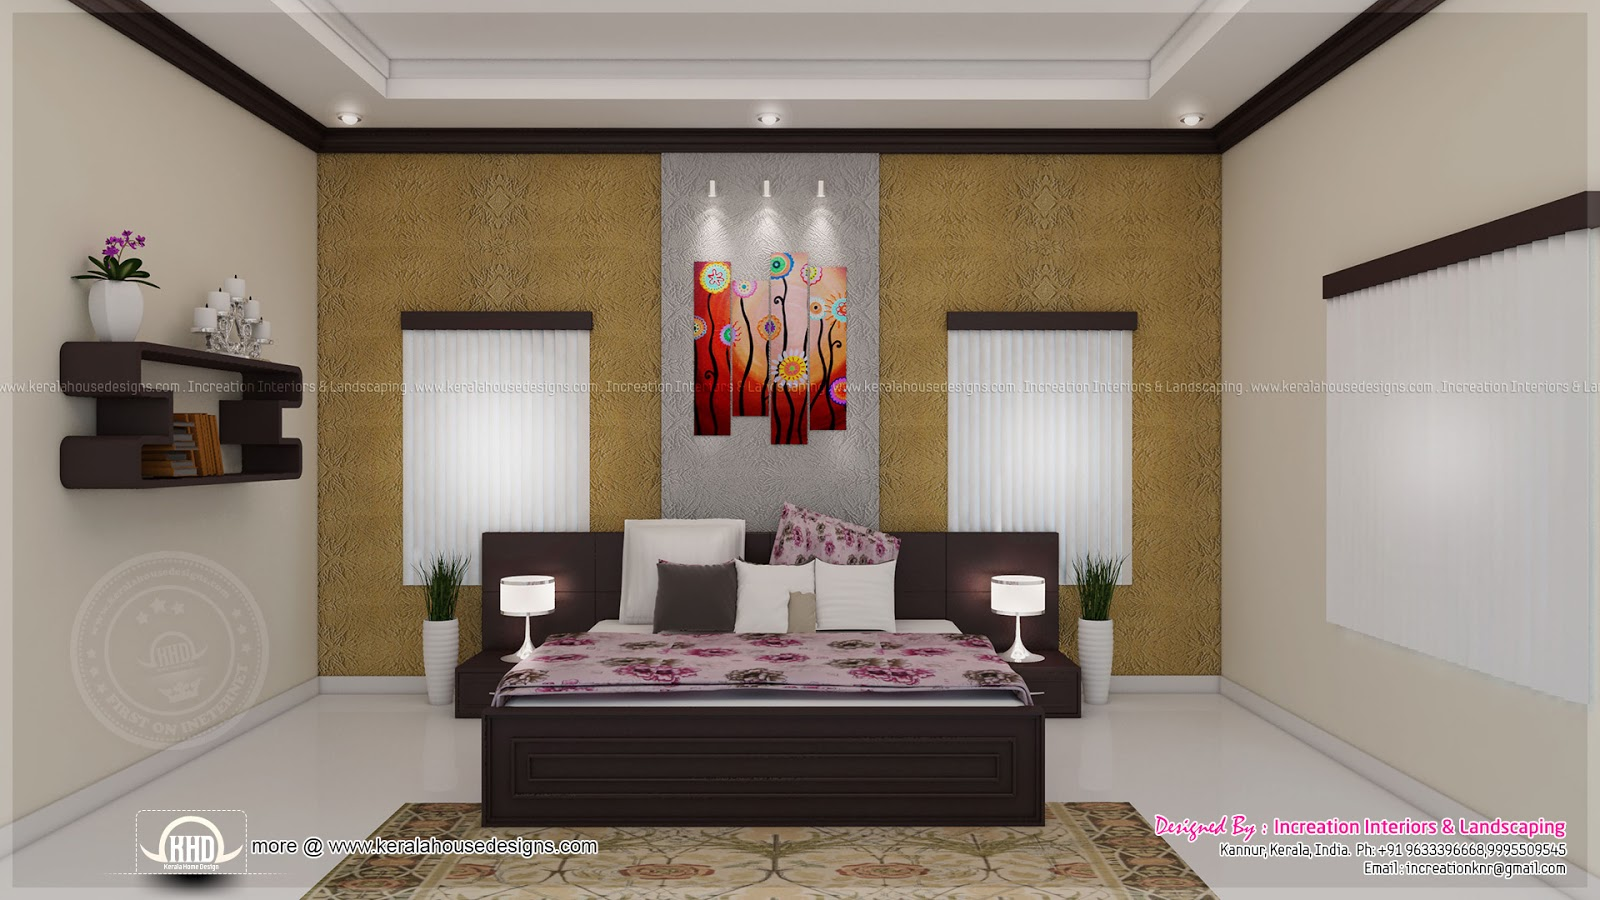 House interior ideas in 3d rendering kerala home design for Indoor home design picture